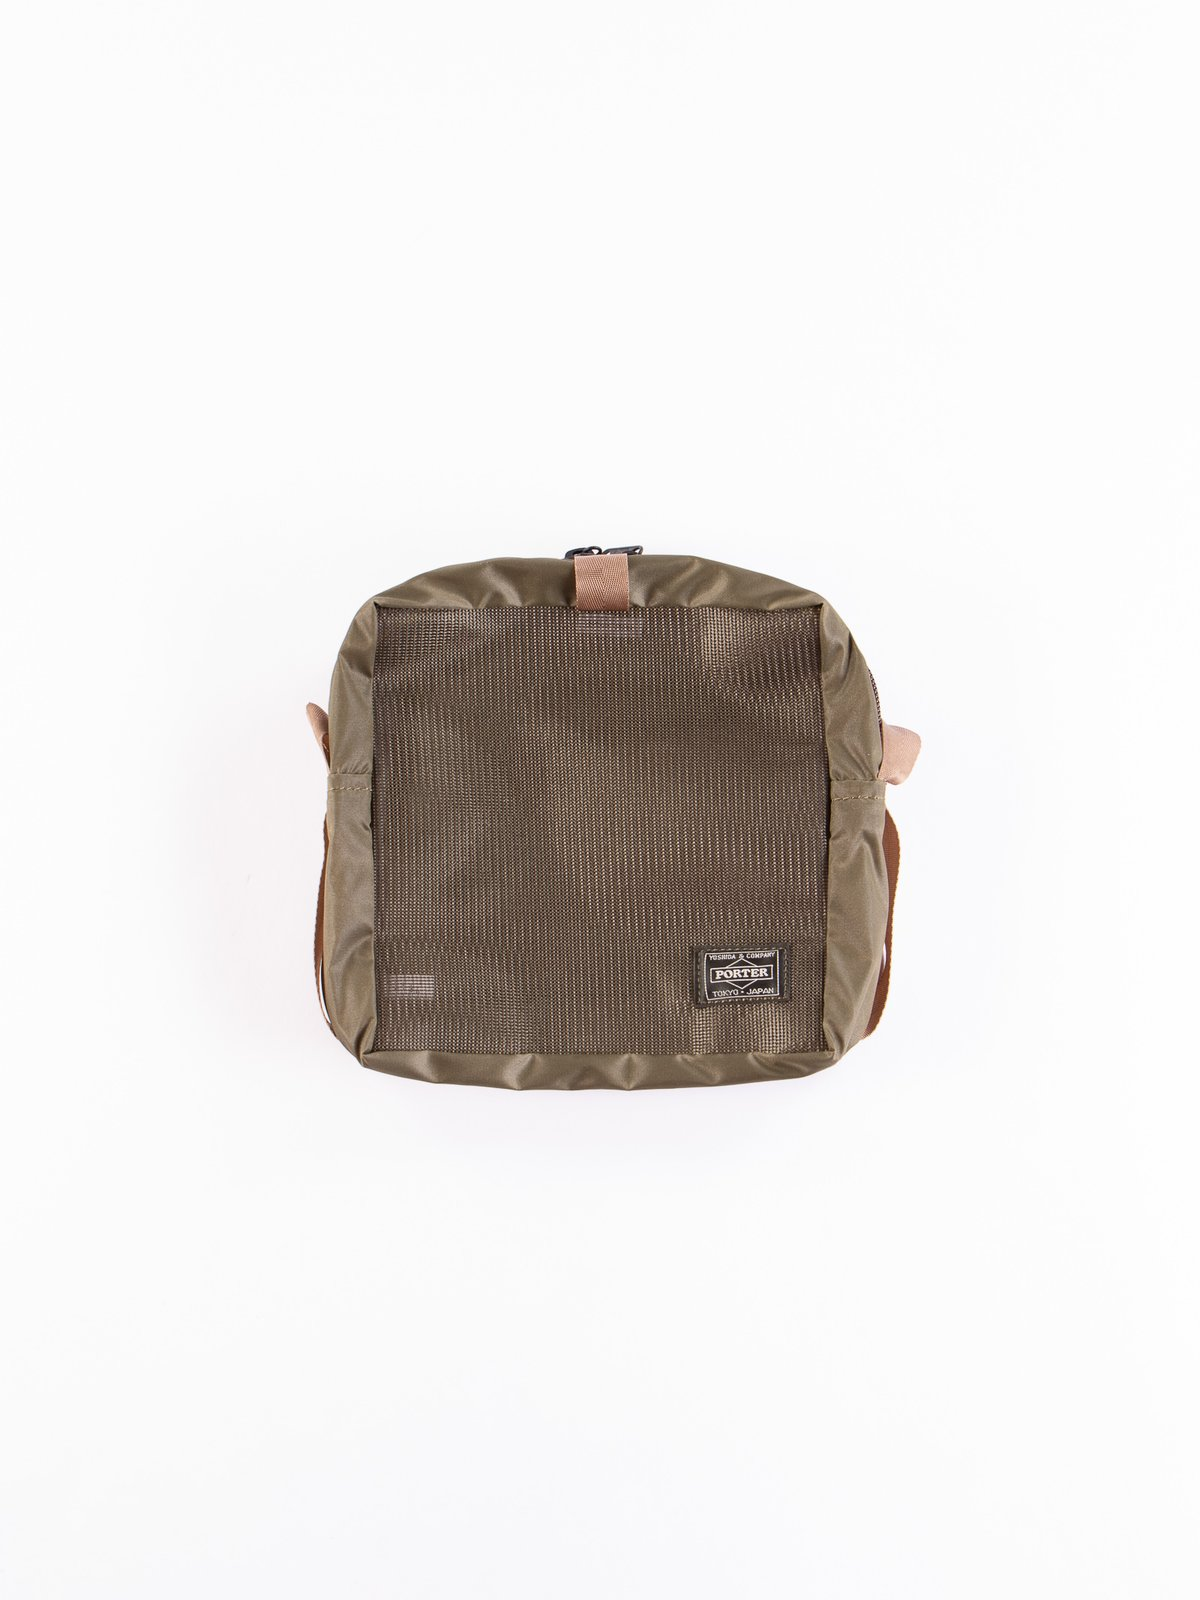 Olive Drab Snack Pack 09806 Pouch Small - Image 1